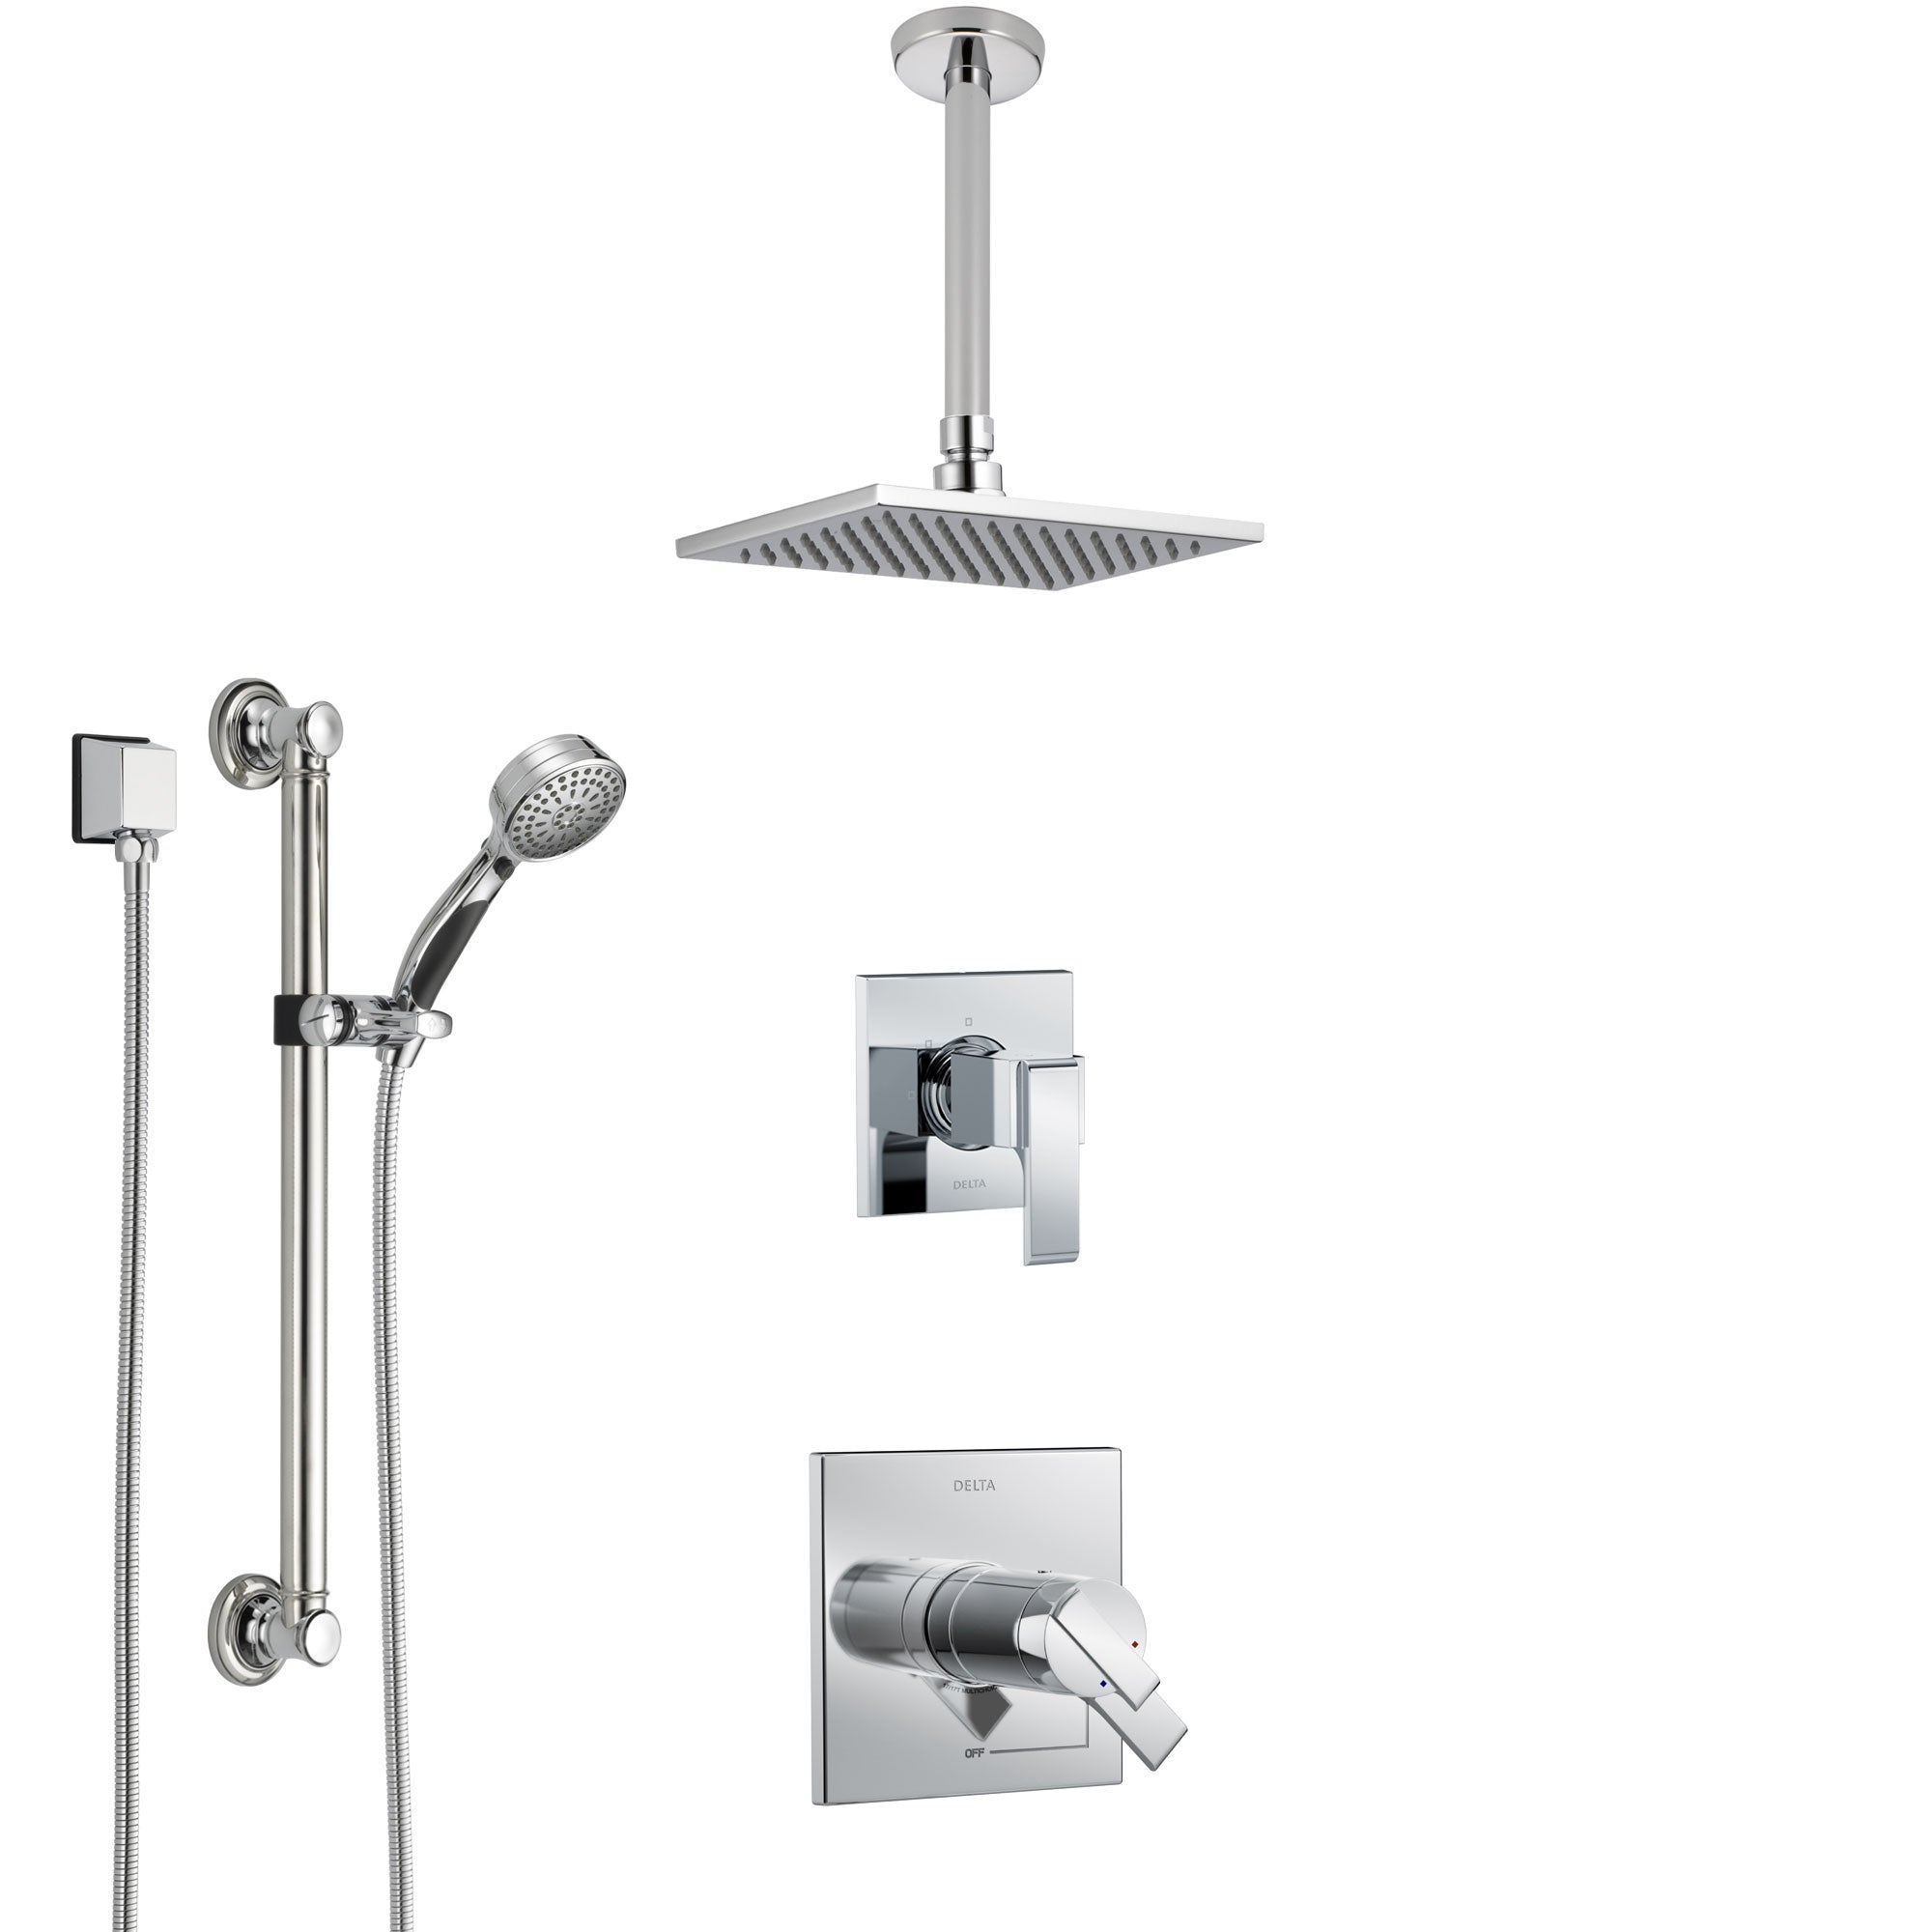 Delta Ara Chrome Shower System with Dual Thermostatic Control Handle, Diverter, Ceiling Mount Showerhead, and Hand Shower with Grab Bar SS17T6711